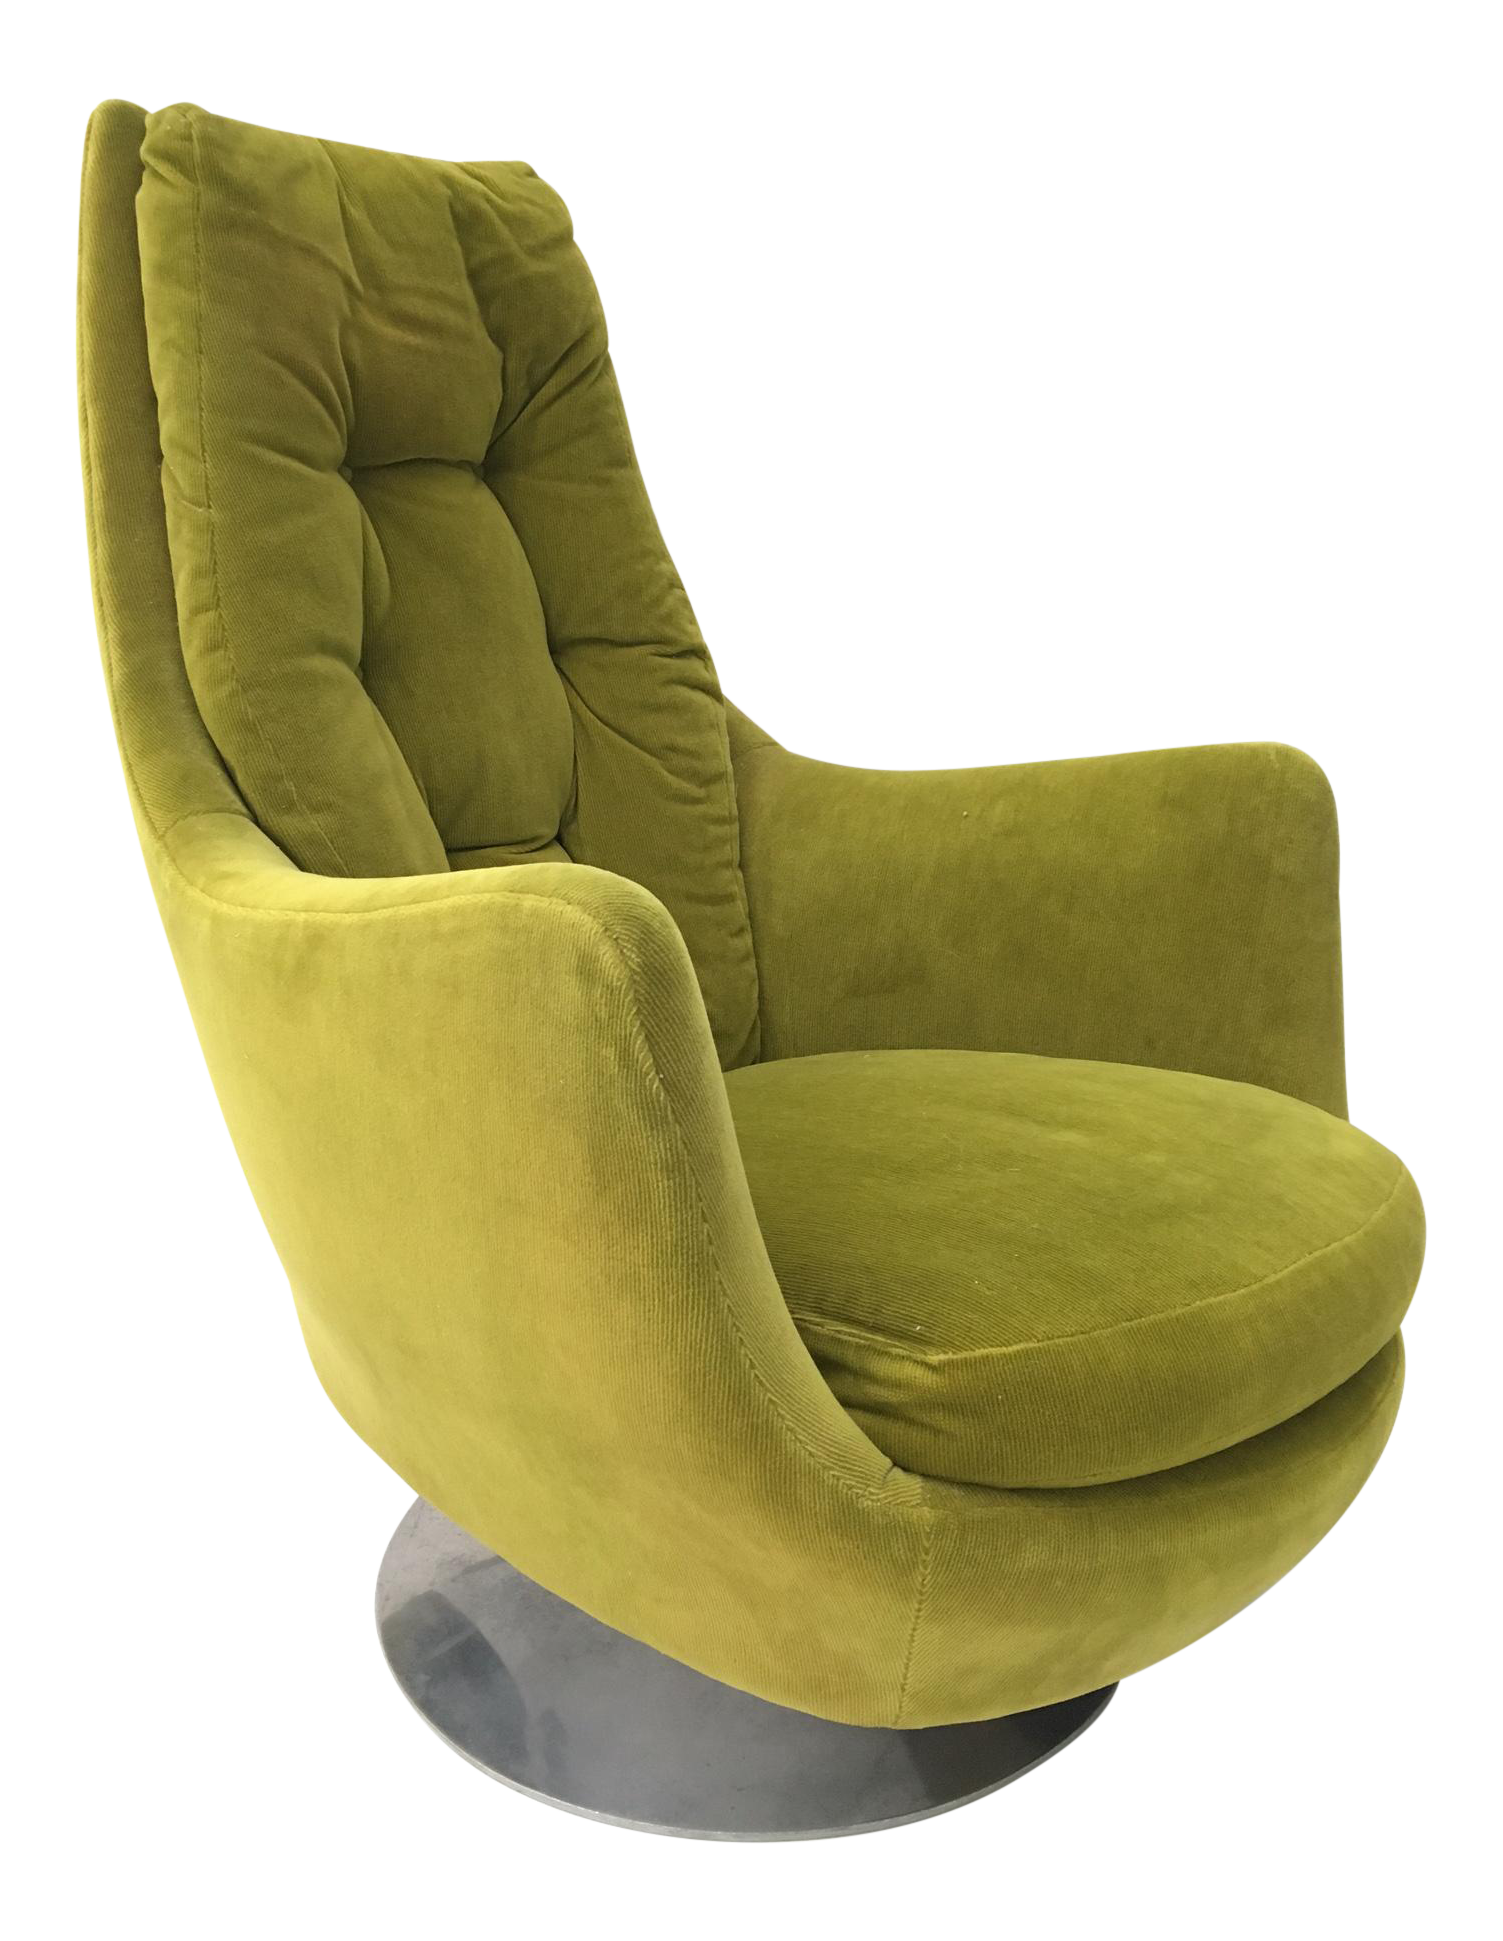 Milo Baughman Thayer Coggin Plush Mod Swivel Lounge Chair For Sale